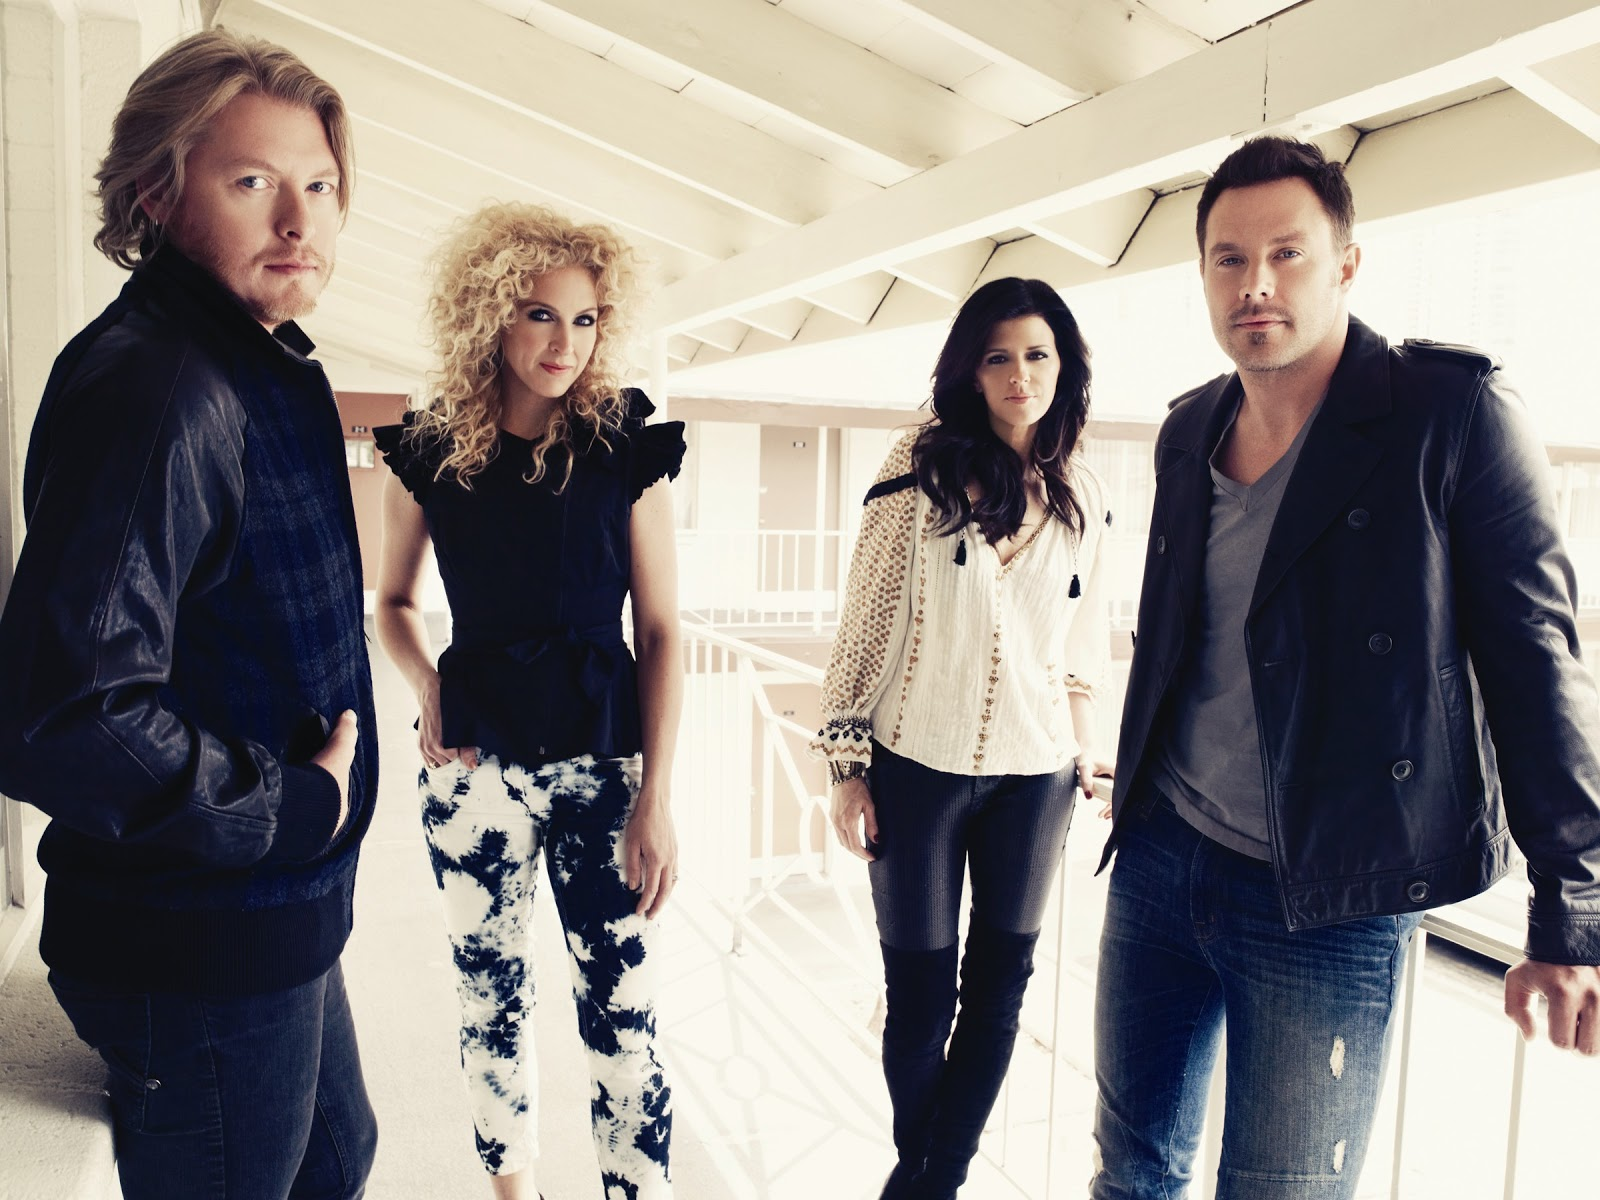 Little Big Town Hunter Hayes To Headline Blue Ridge Music Festival